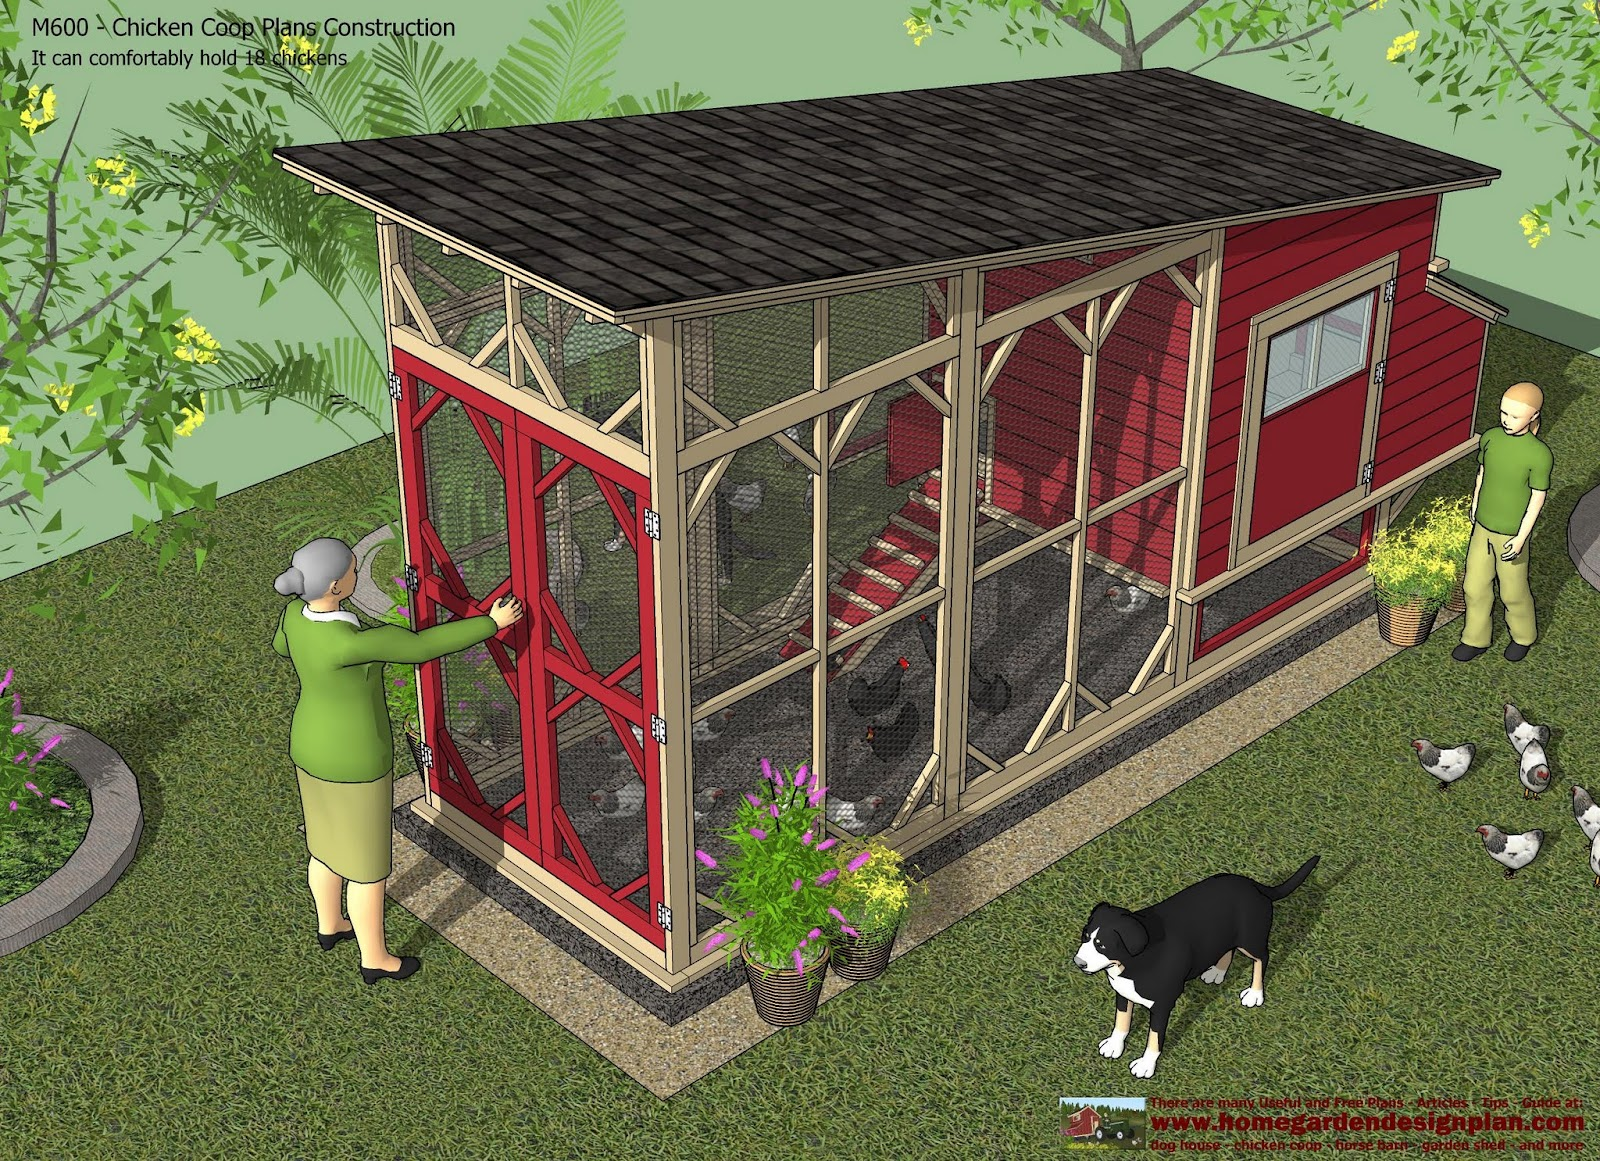 Home garden plans m600 chicken coop plans construction for Chicken run plans